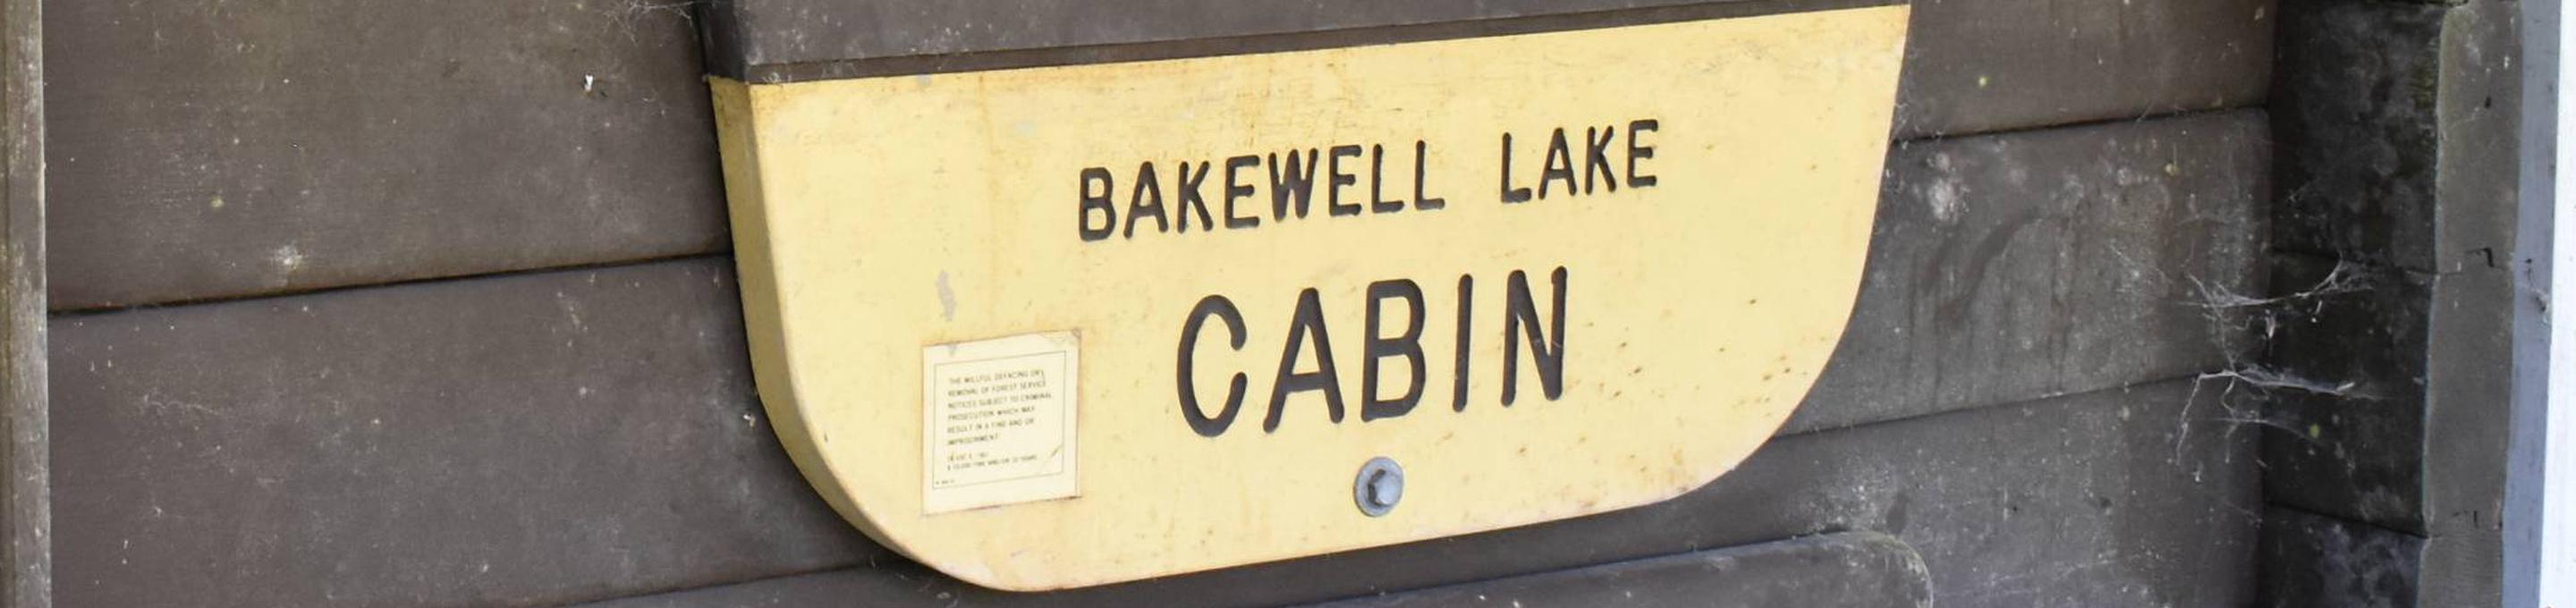 Bakewell Lake Cabin Sign